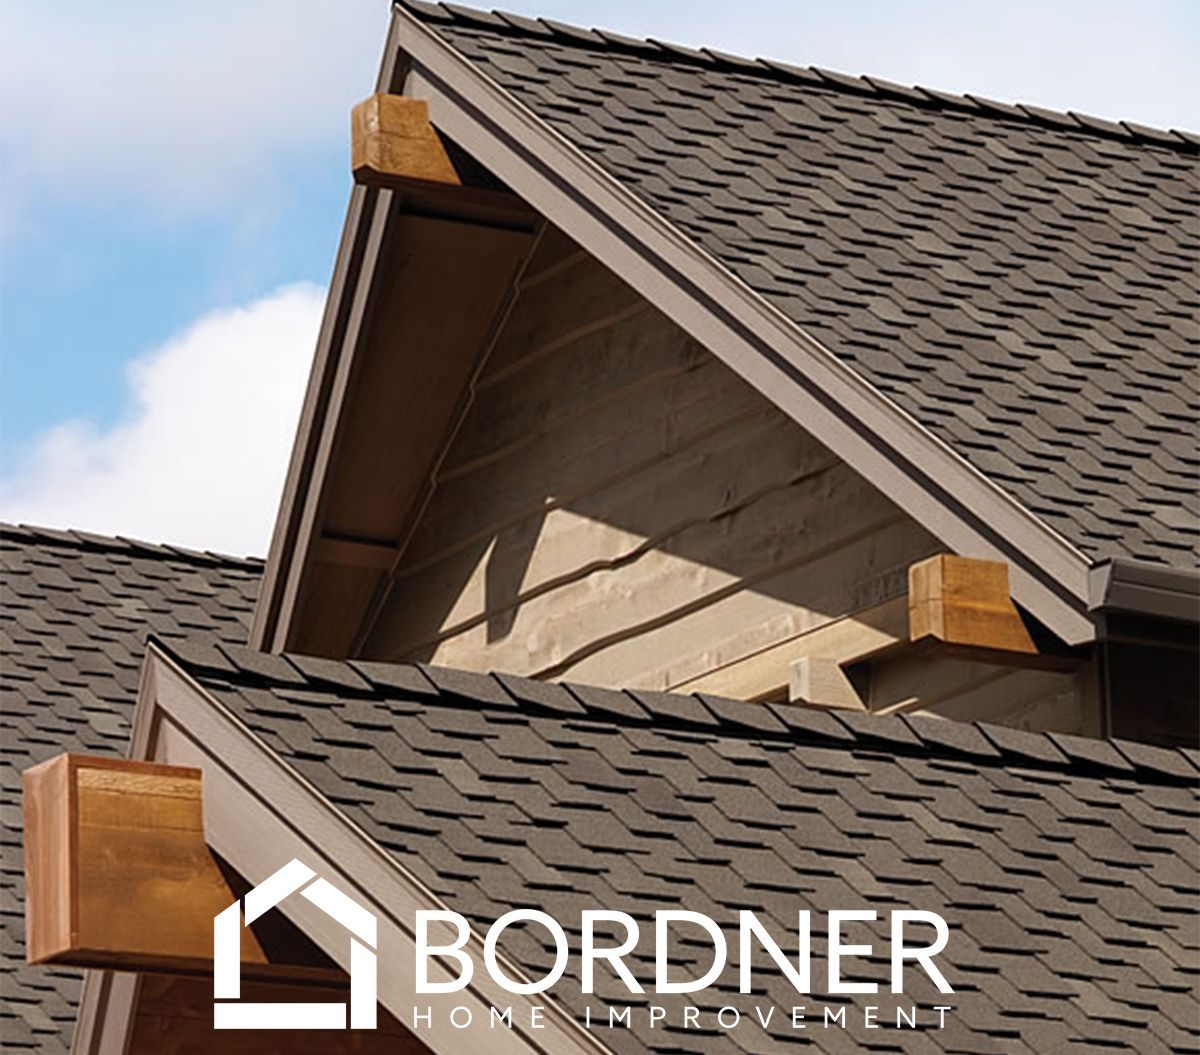 Bordner On Twitter When You Need Experienced Roofing